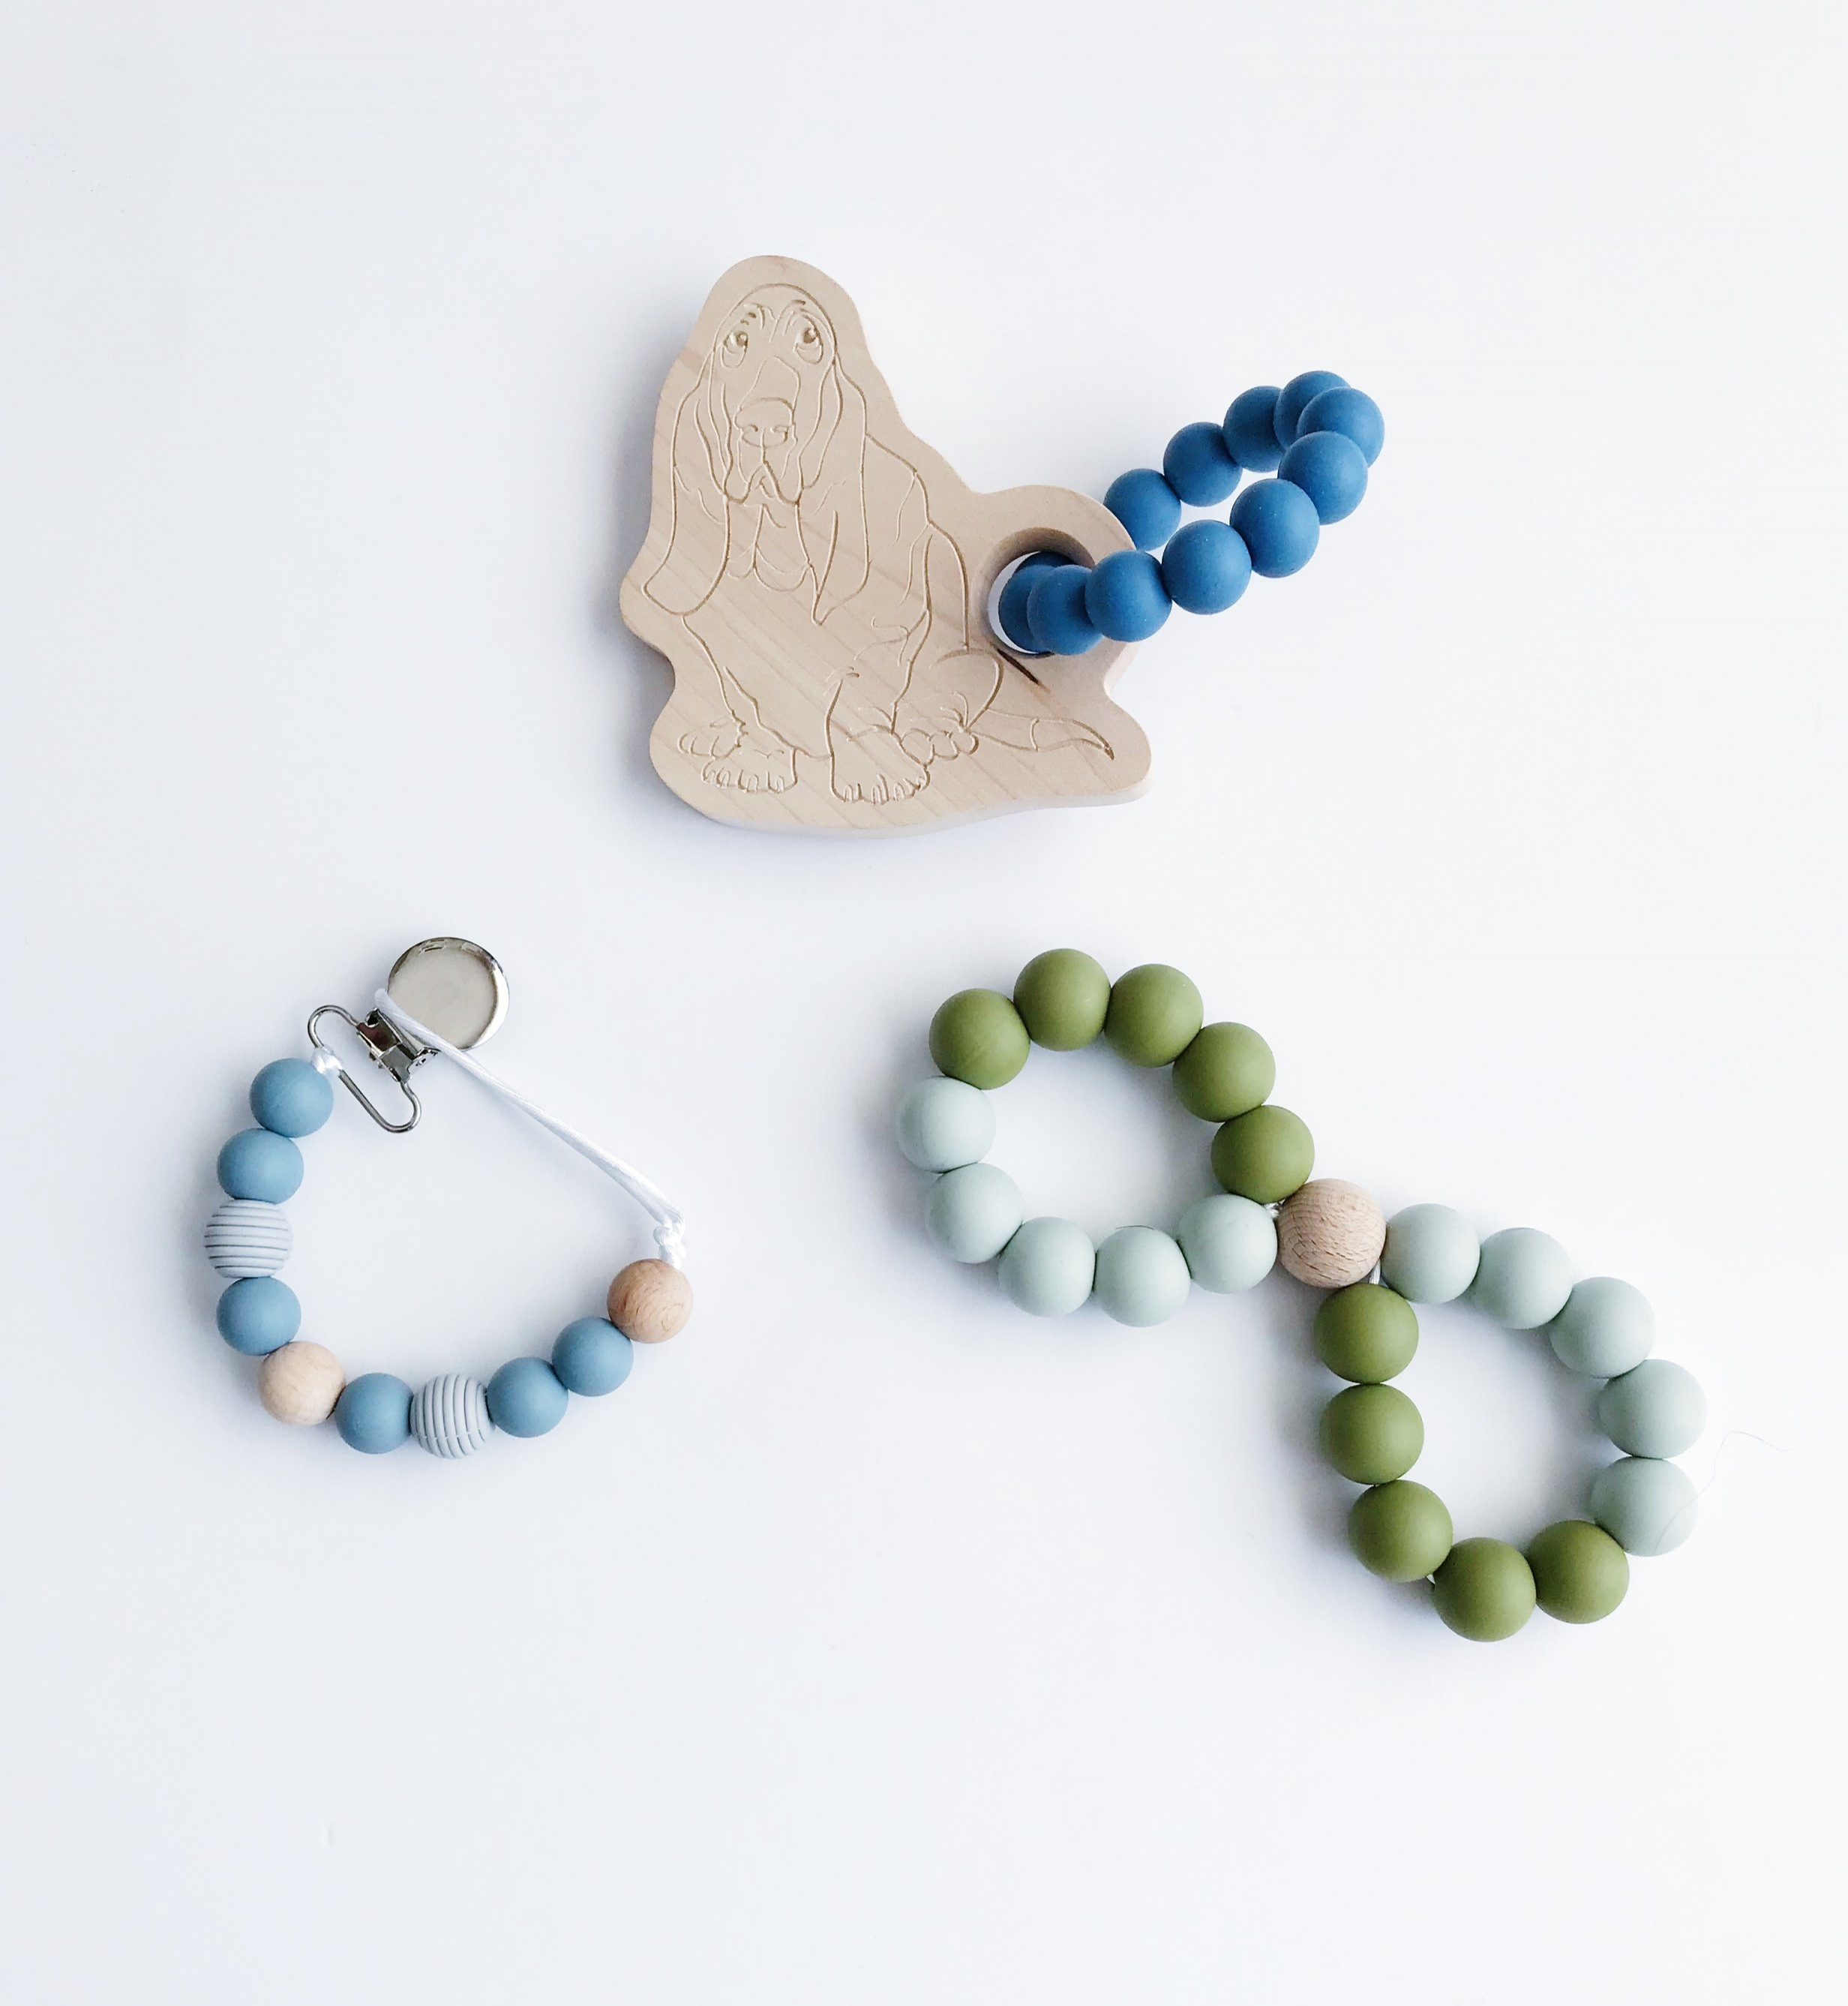 Baby Niche Pacifier Clips & Teethers - save 15% with code: BESTIE15